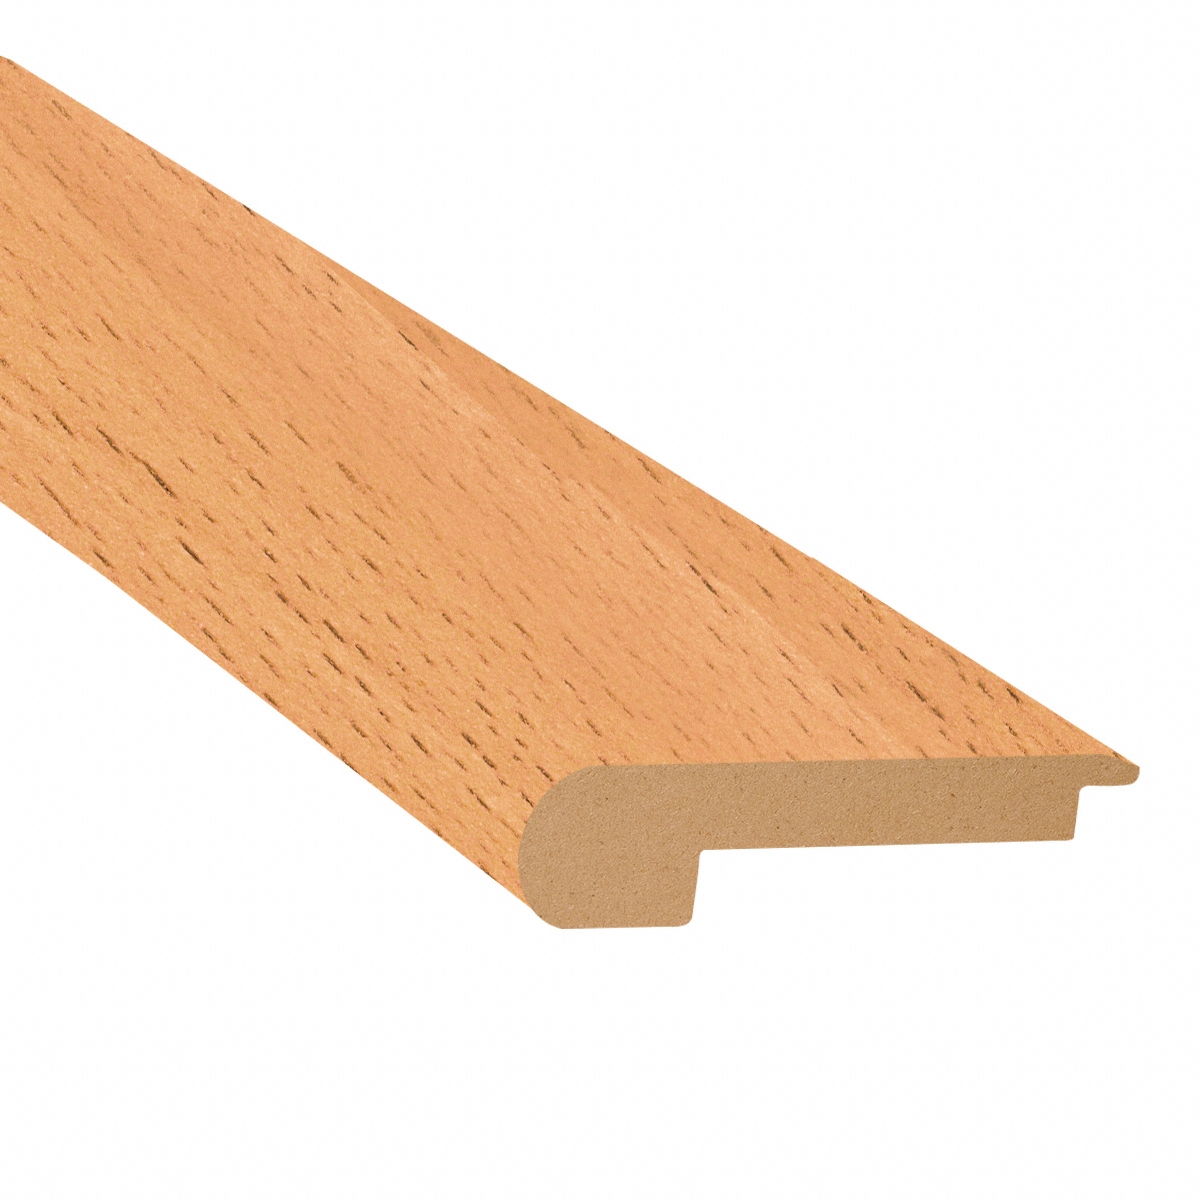 American Beech Laminate 2 3 In Wide X 7 5 Ft Length Stair Nose Ll Flooring